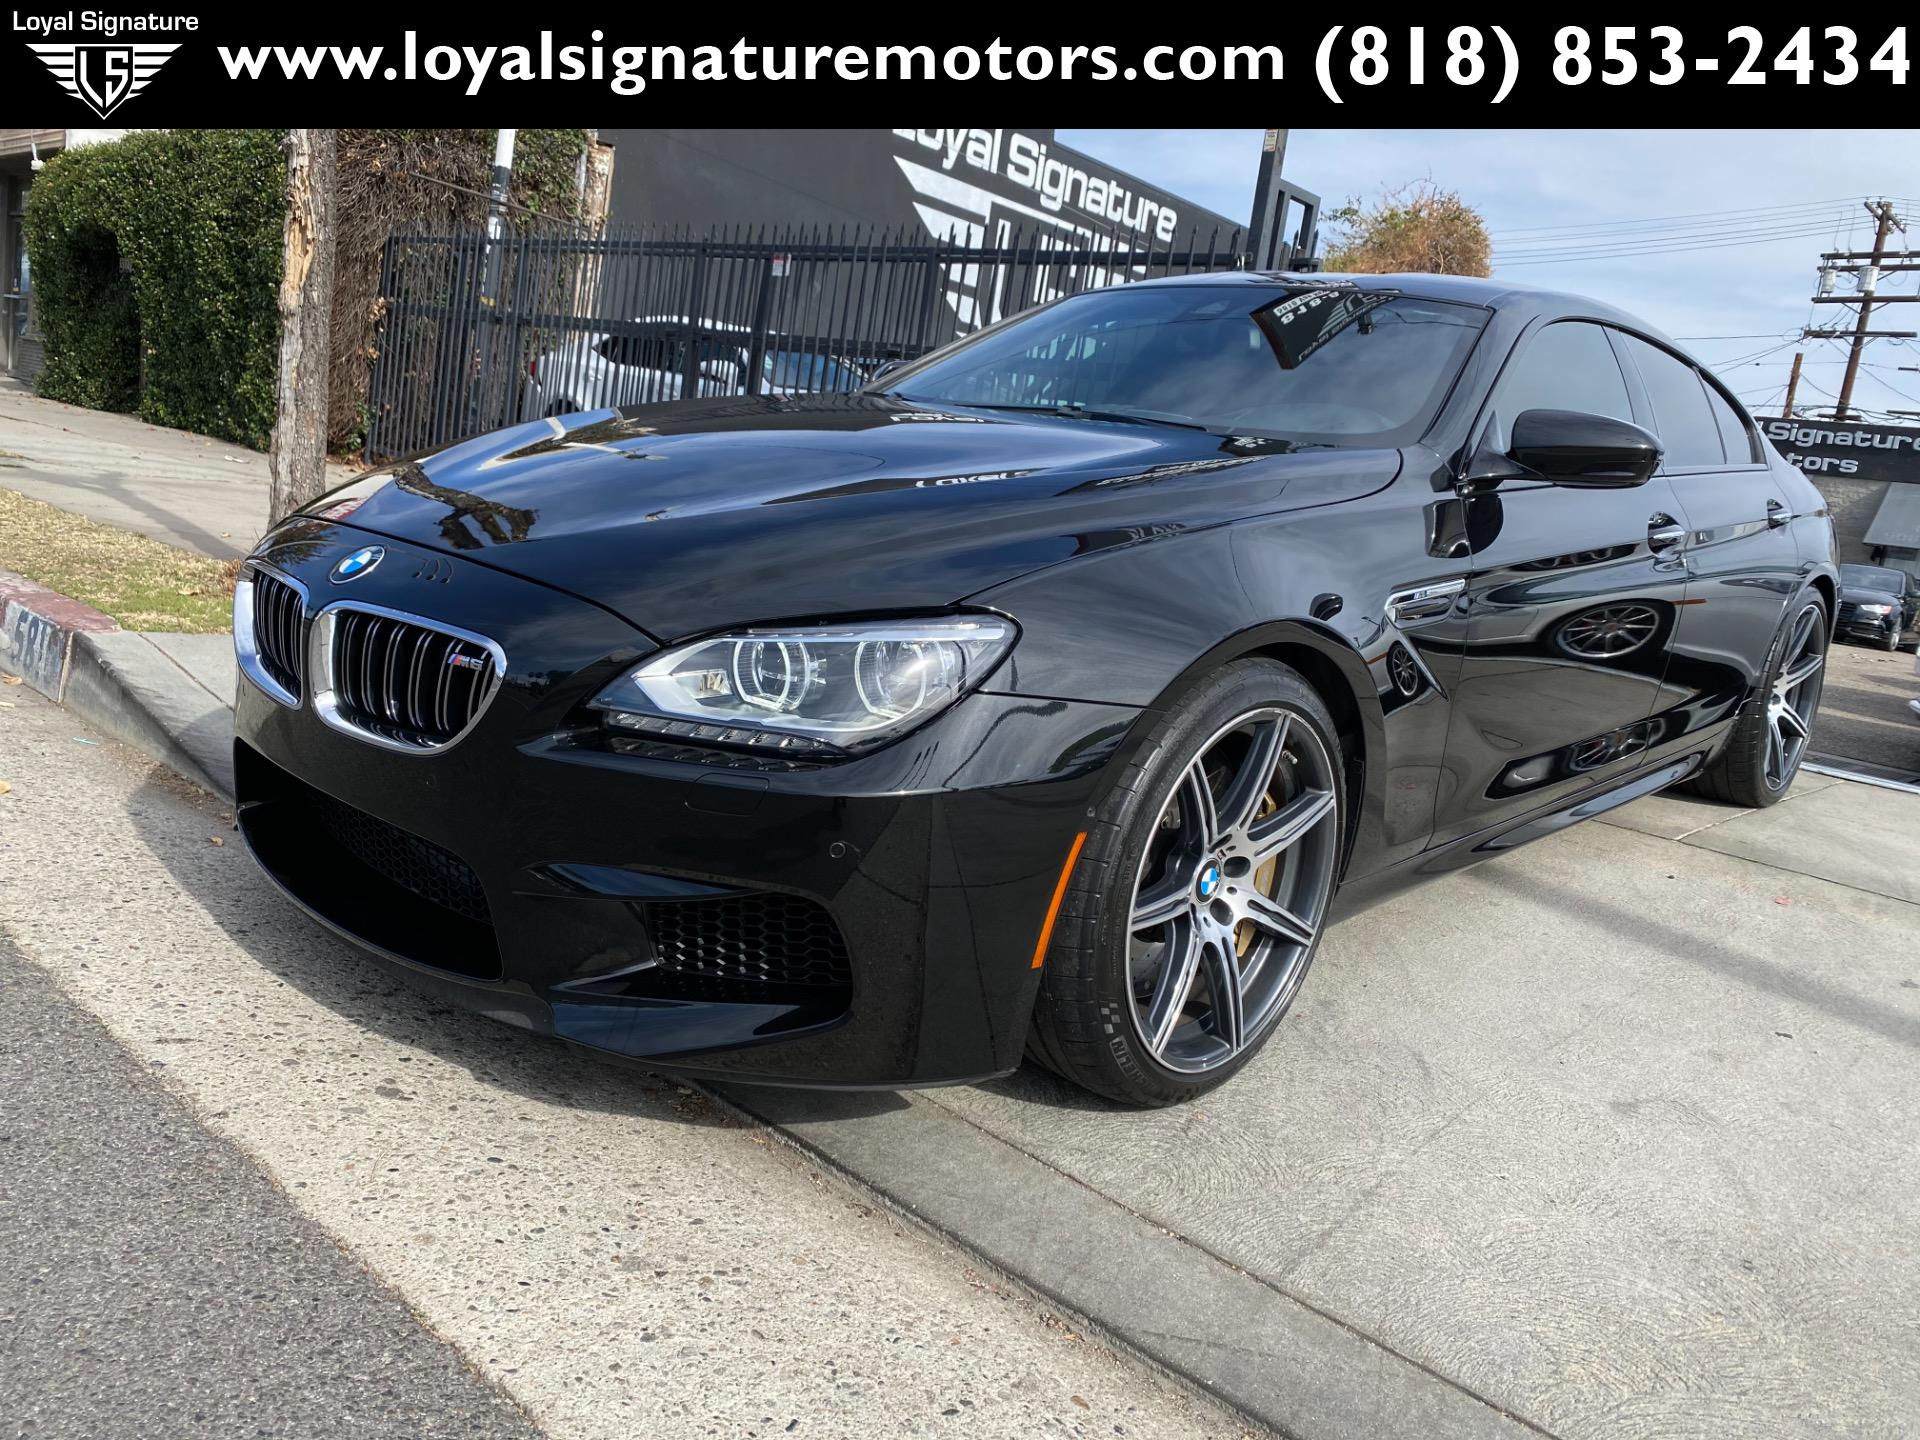 Used-2014-BMW-M6-Gran-Coupe